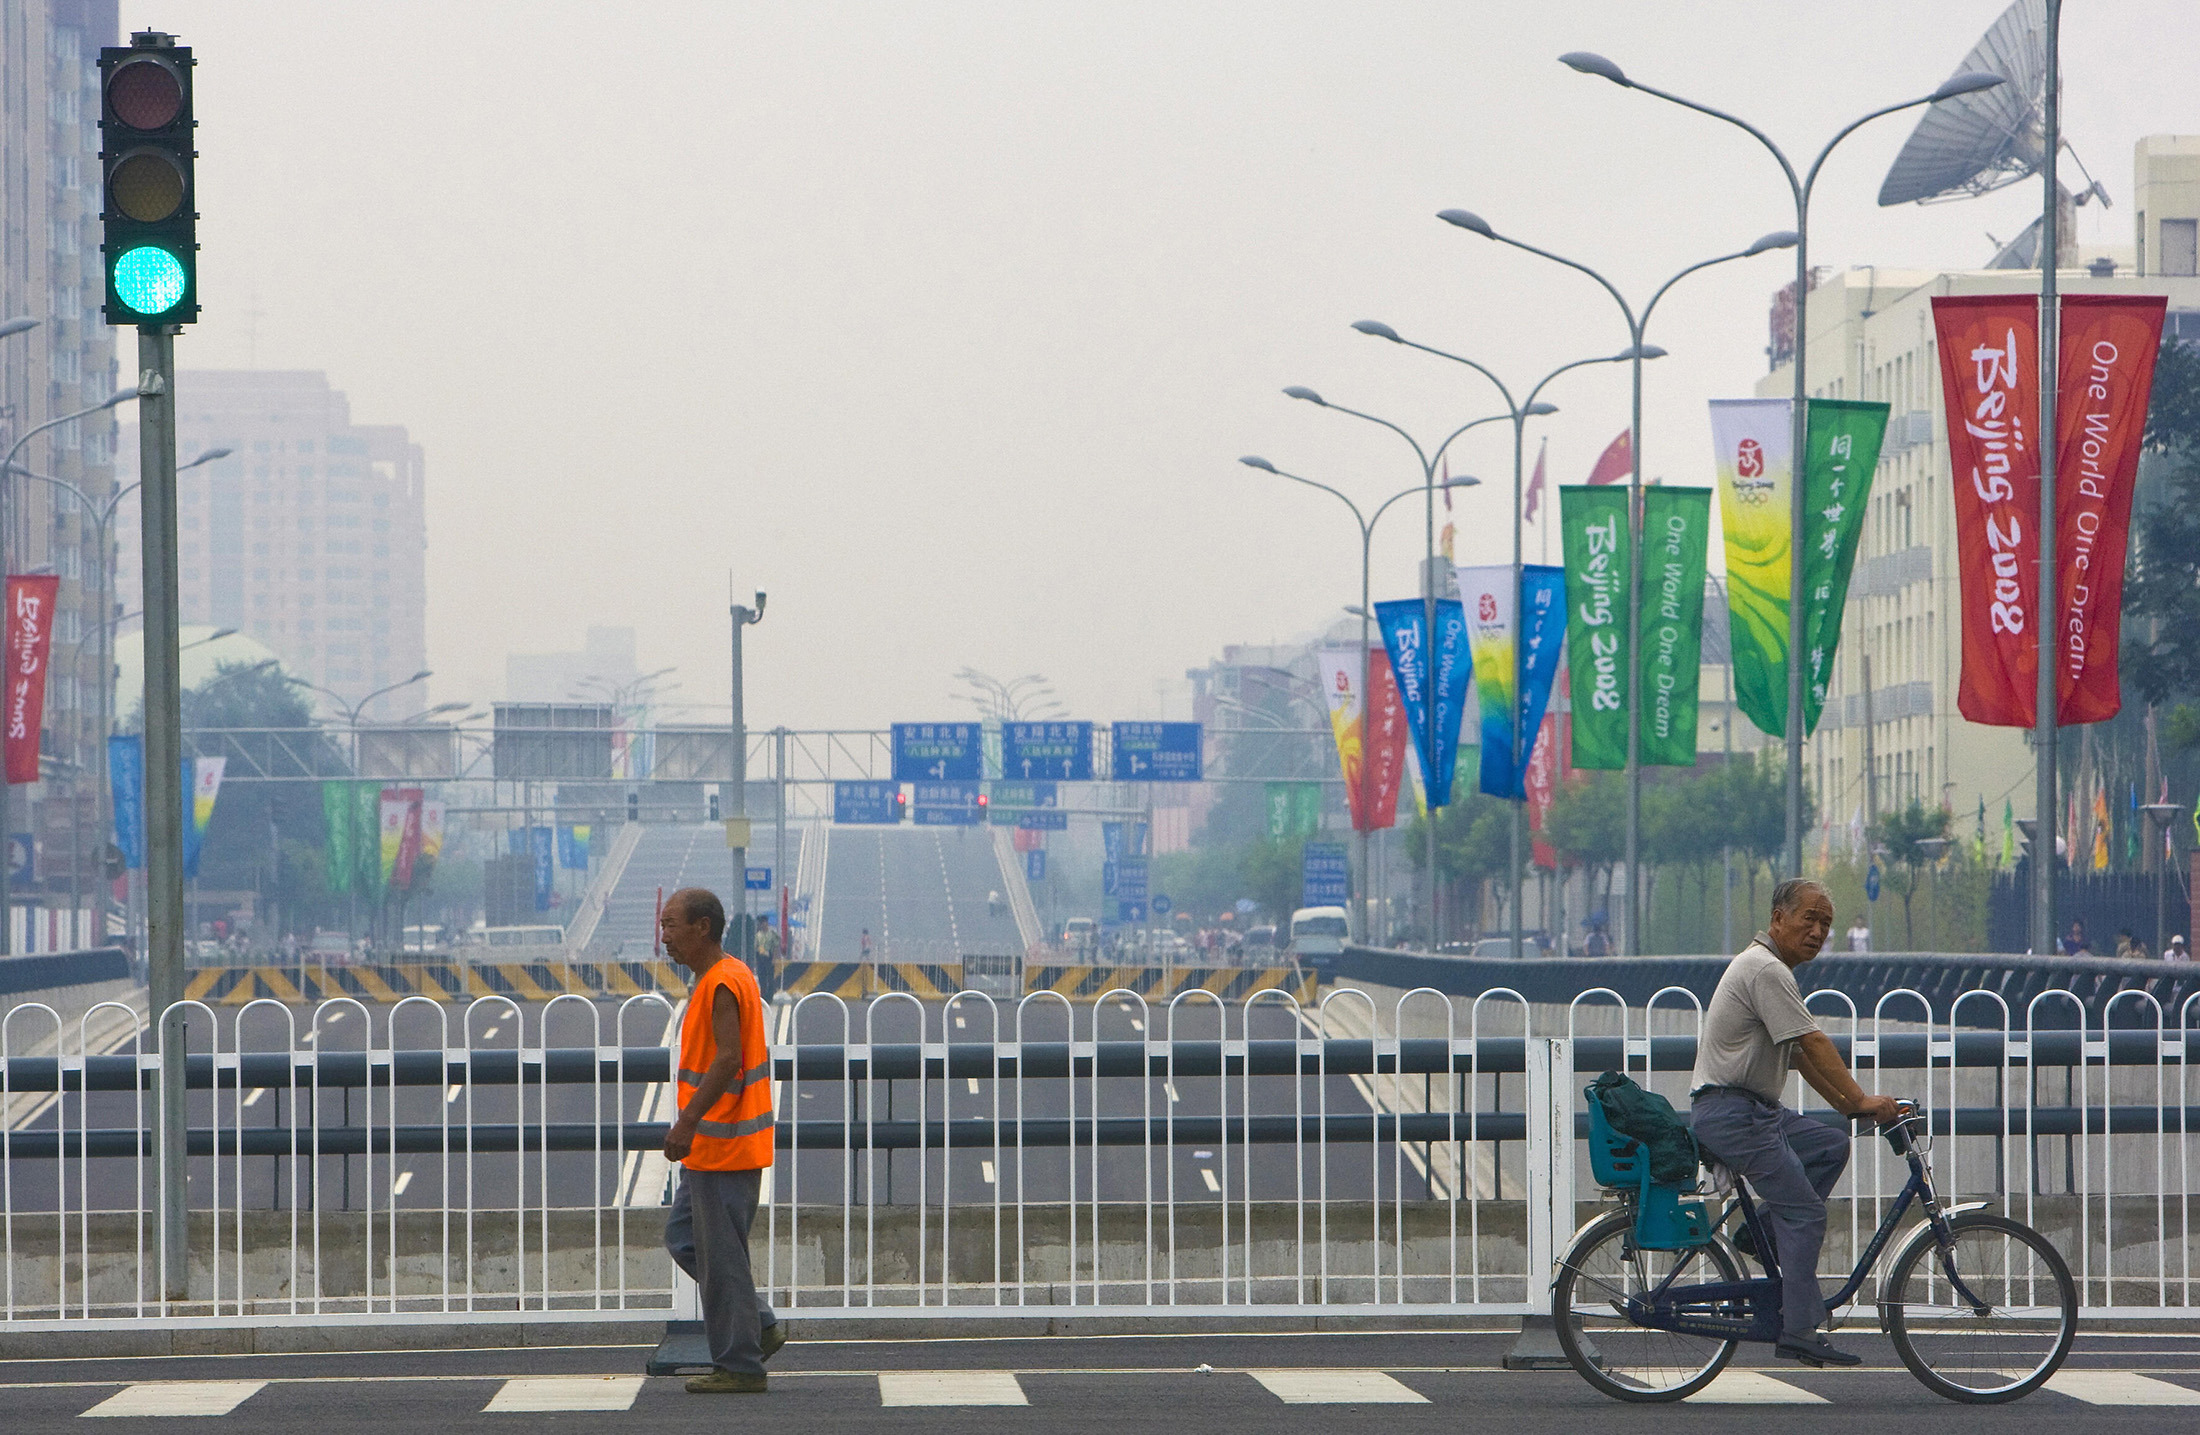 Less TV, no smog and other edicts for China's military parade